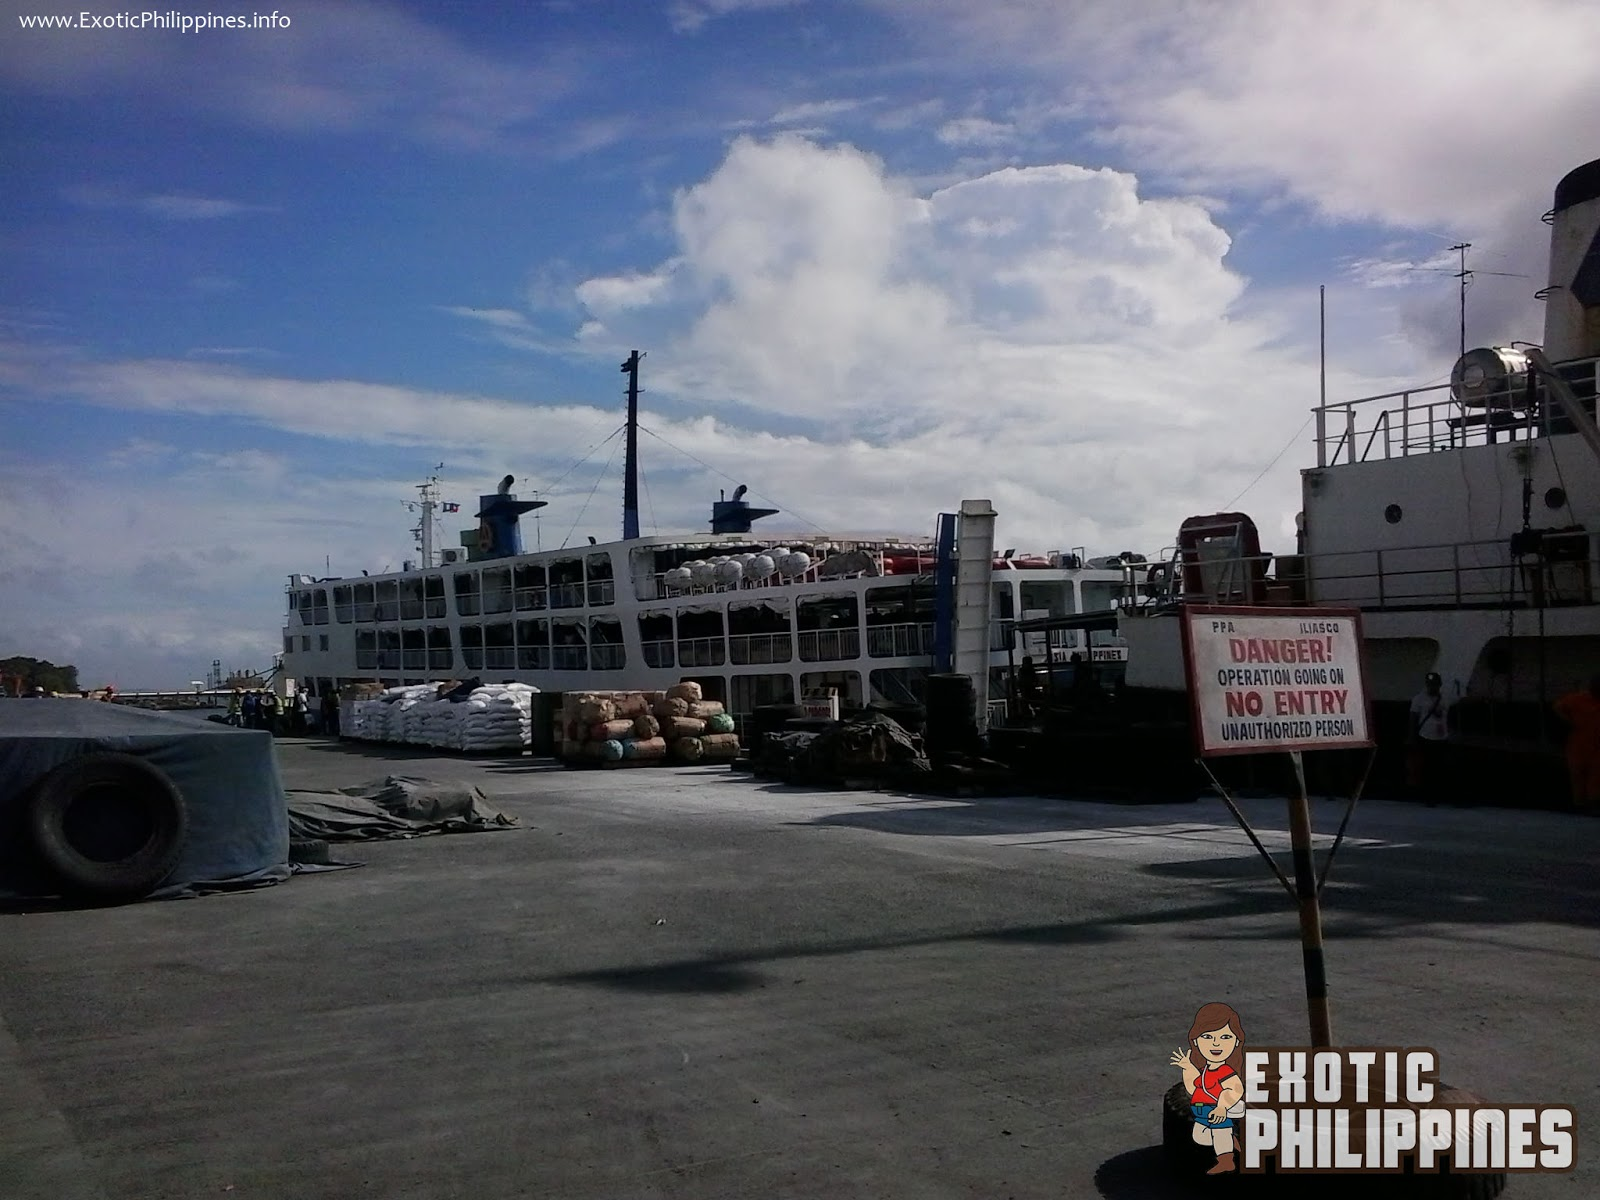 3 Ways on How to Get to Boracay Philippines Via Ship or Plane at Ilo-ilo Ilo-ilo City Port